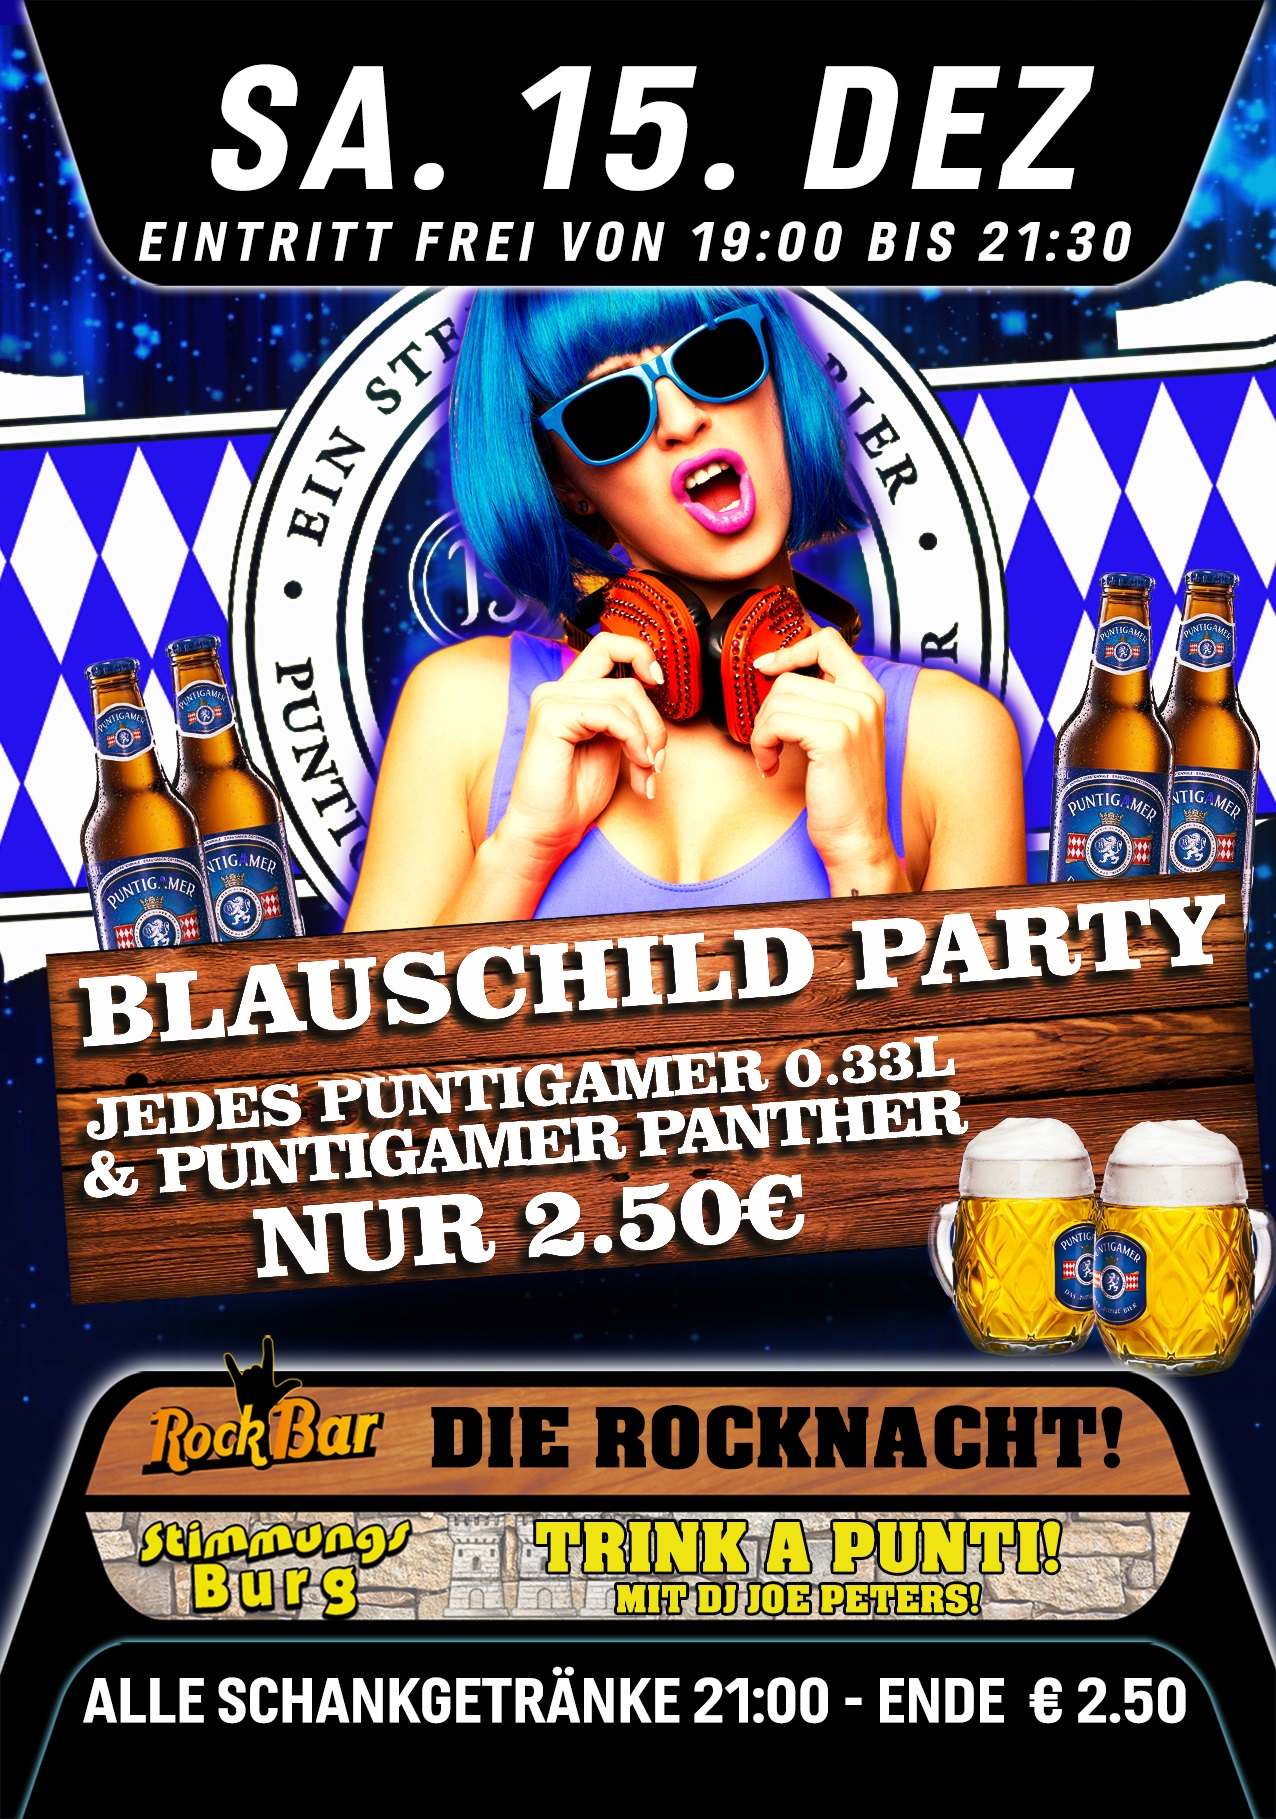 Blauschild Party